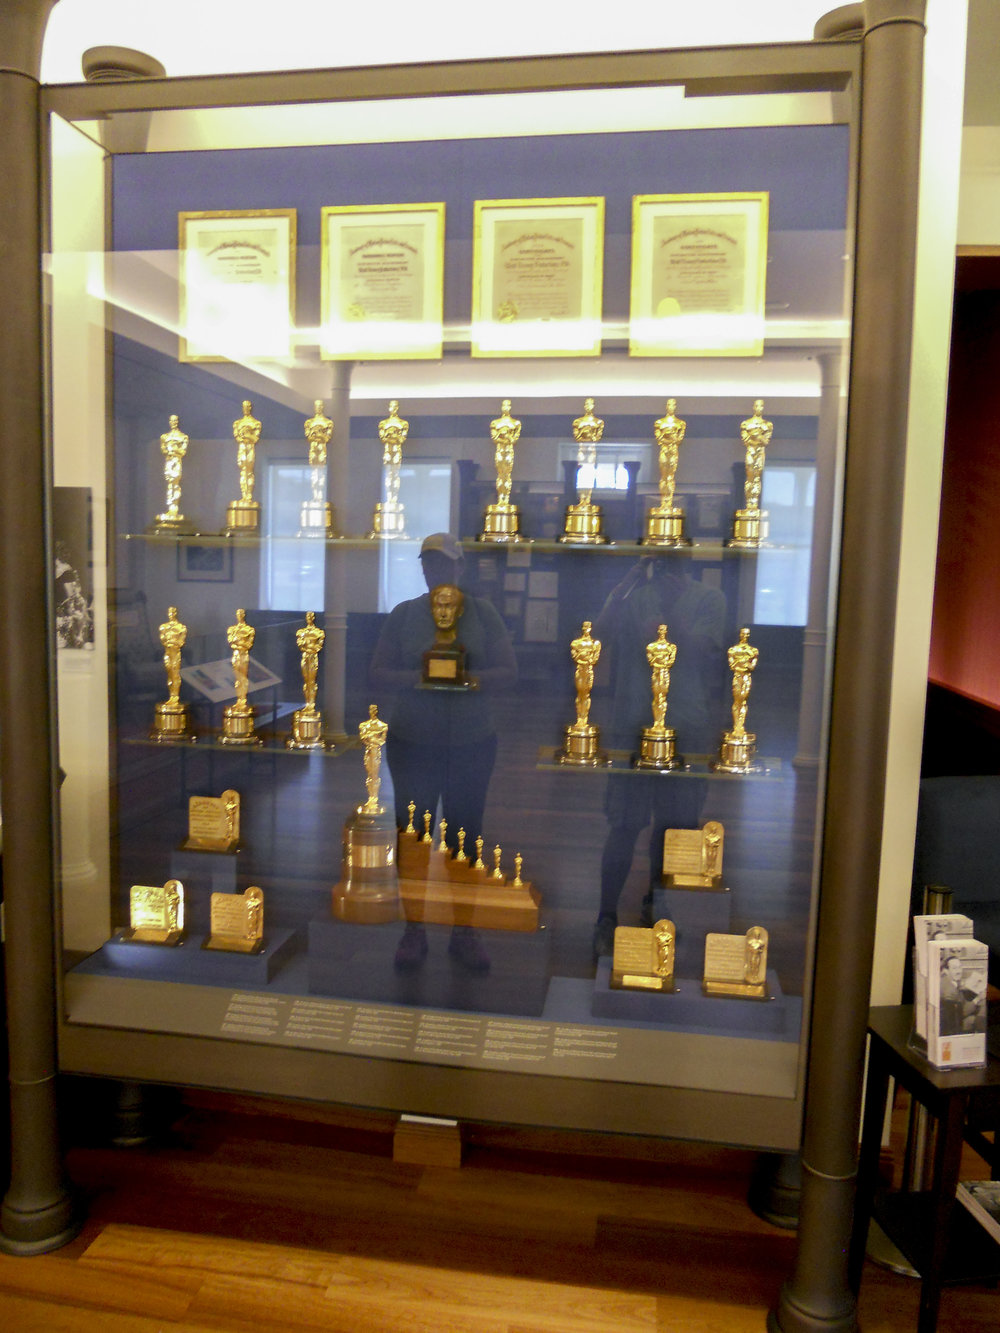 A collection of Oscars including the special  Snow White and the Seven Dwarves  edition.